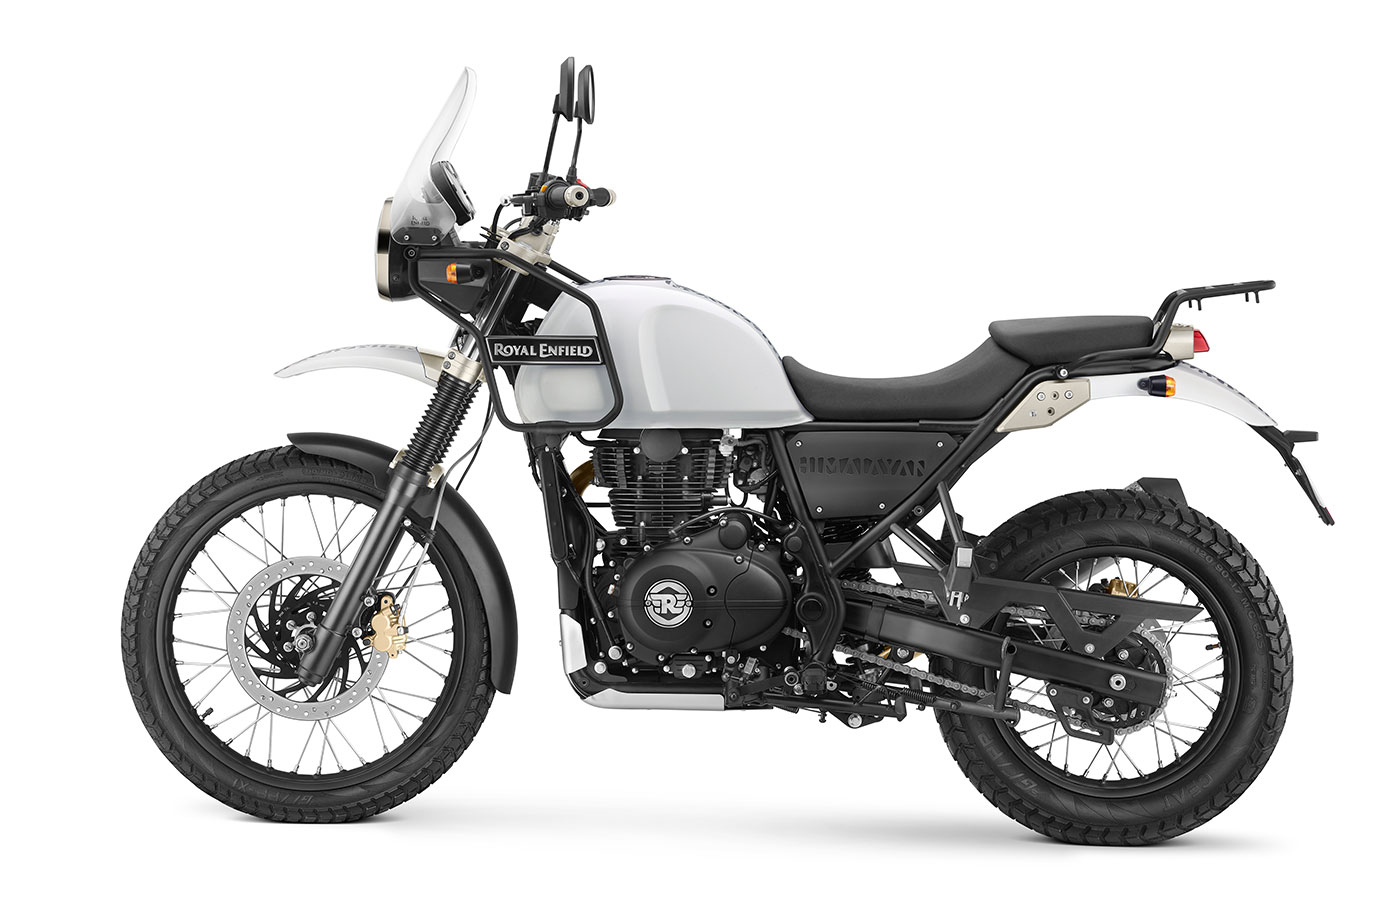 Source- royalenfield.com